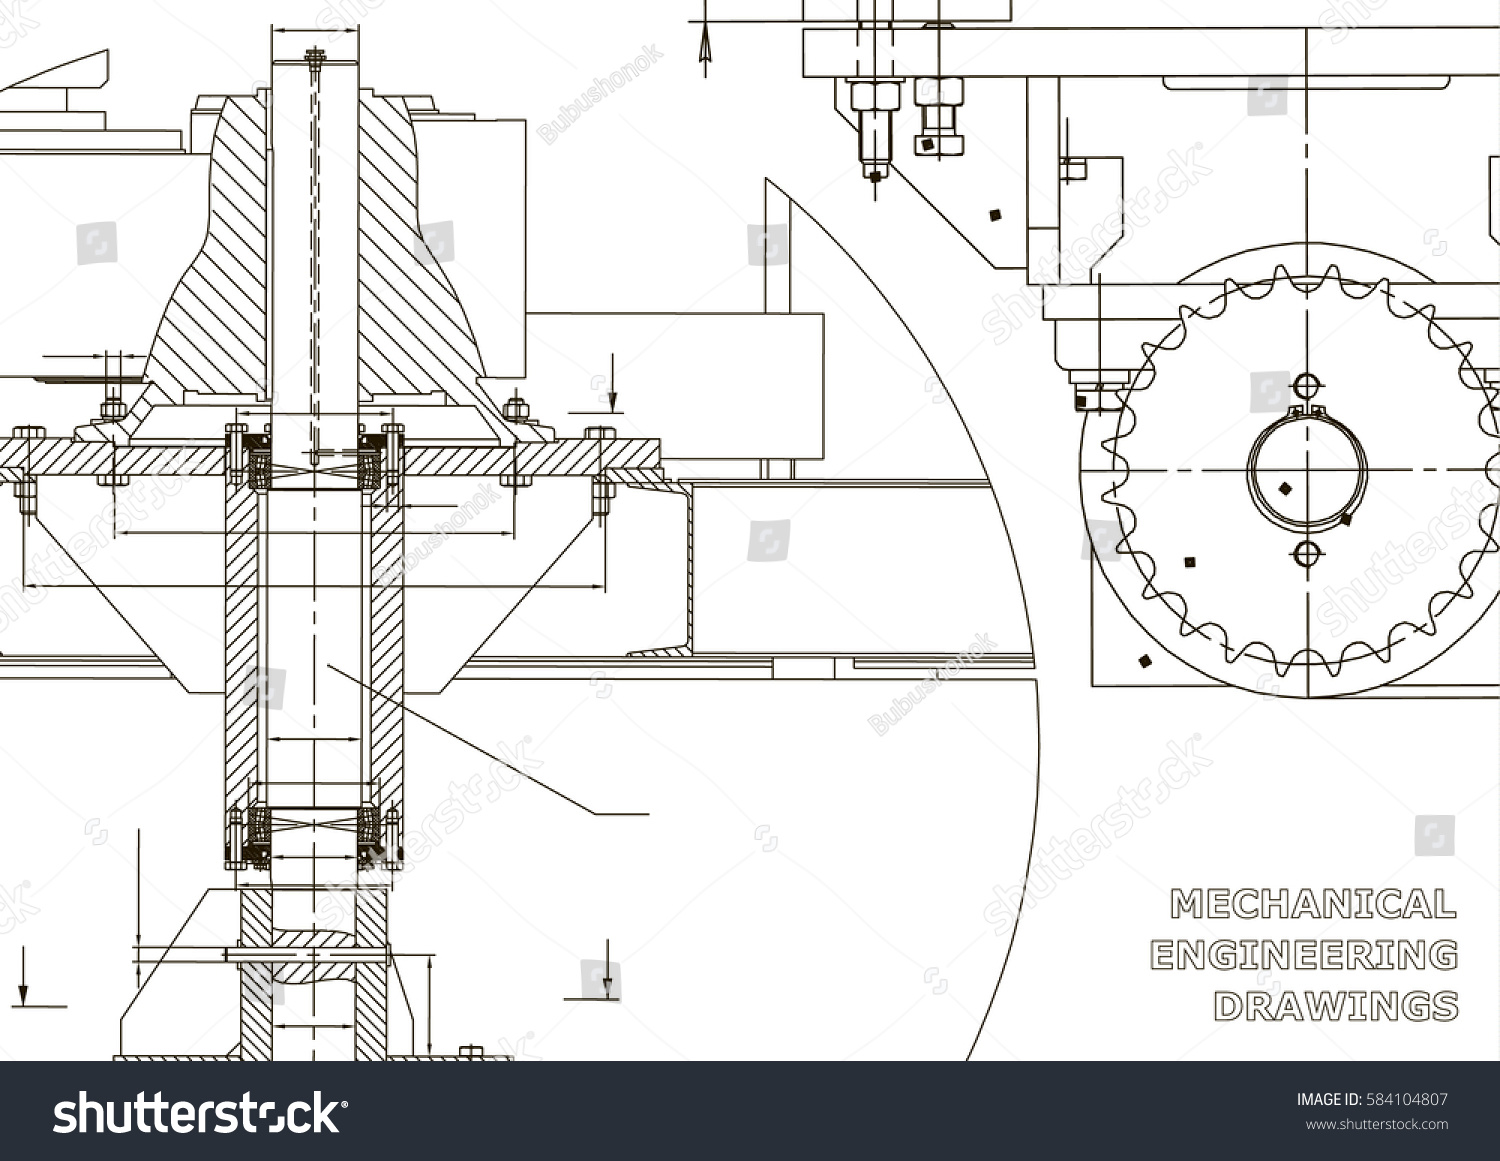 Blueprints mechanical engineering drawings cover banner for Engineering blueprints